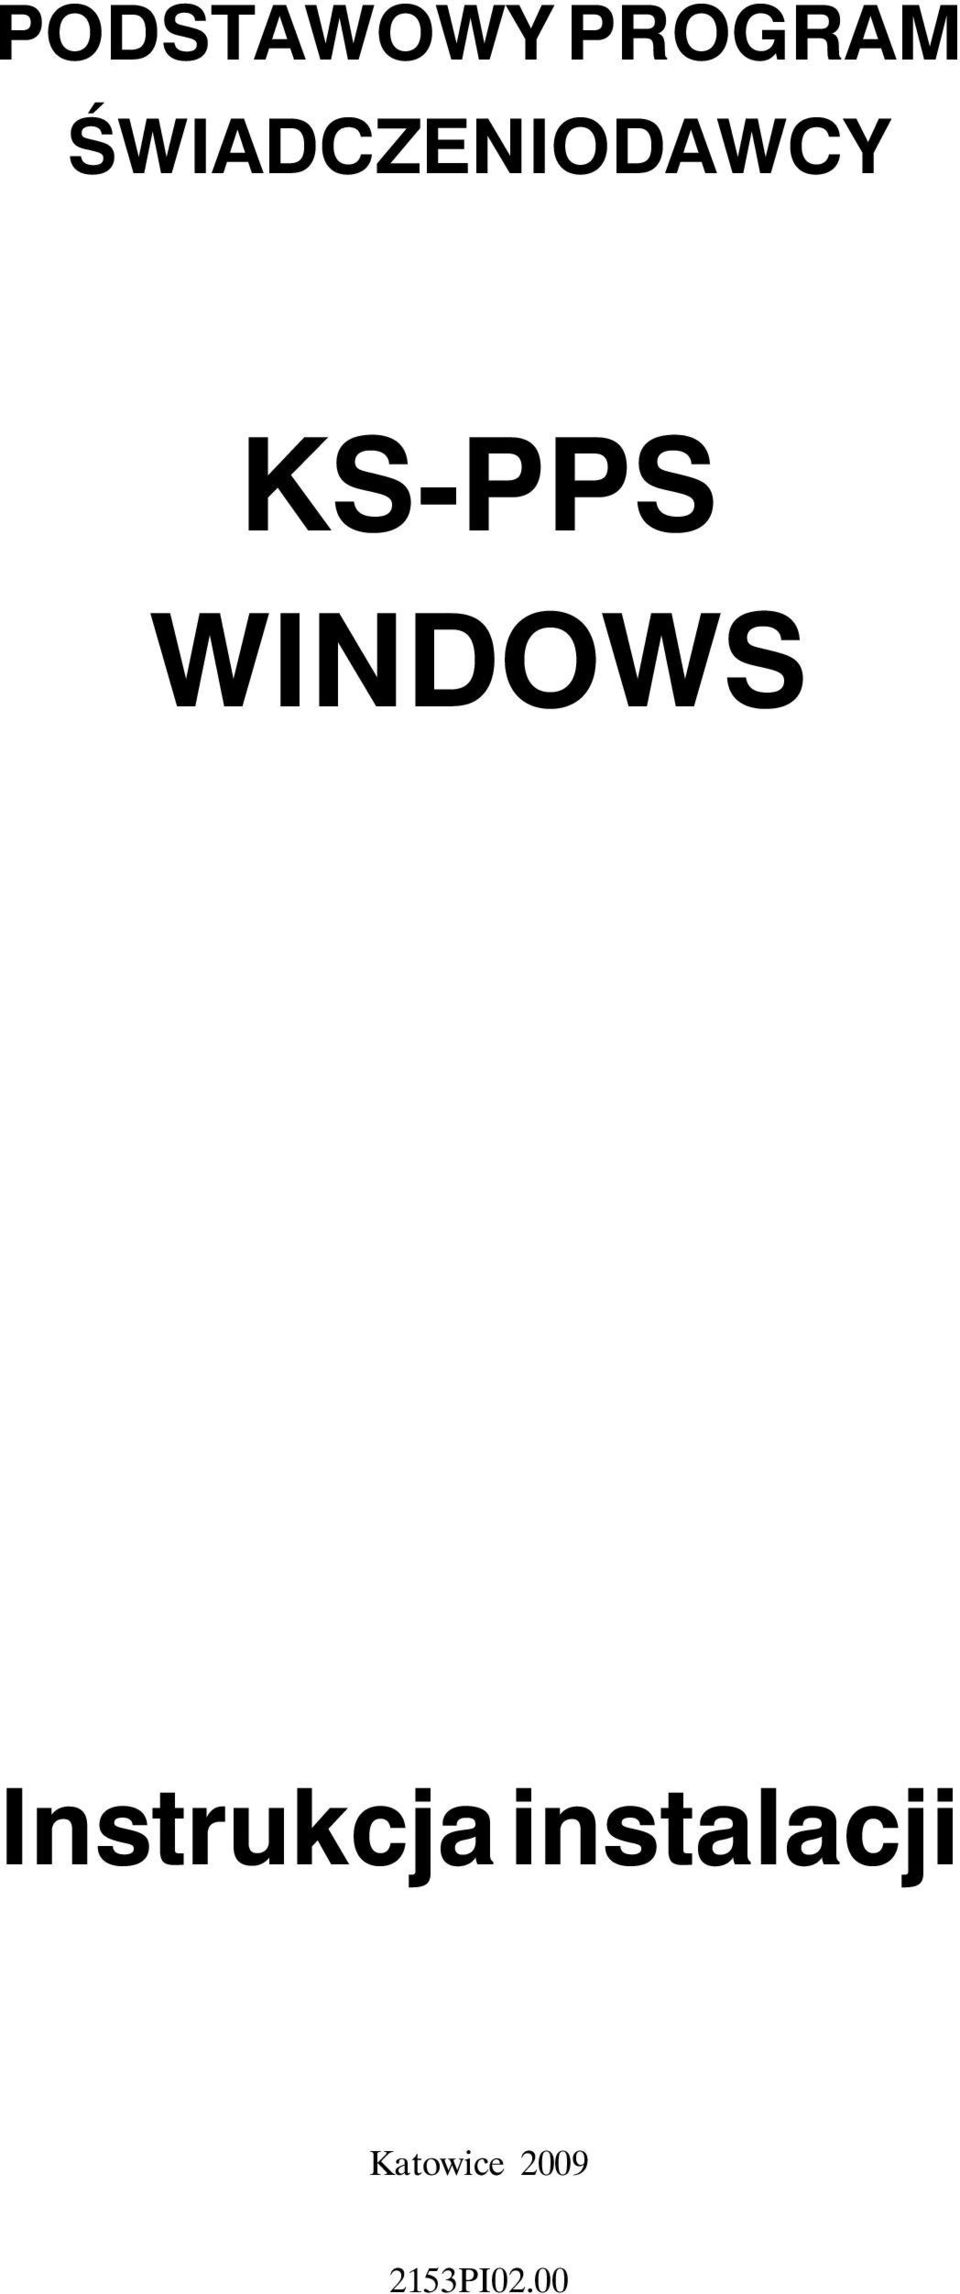 WINDOWS Instrukcja